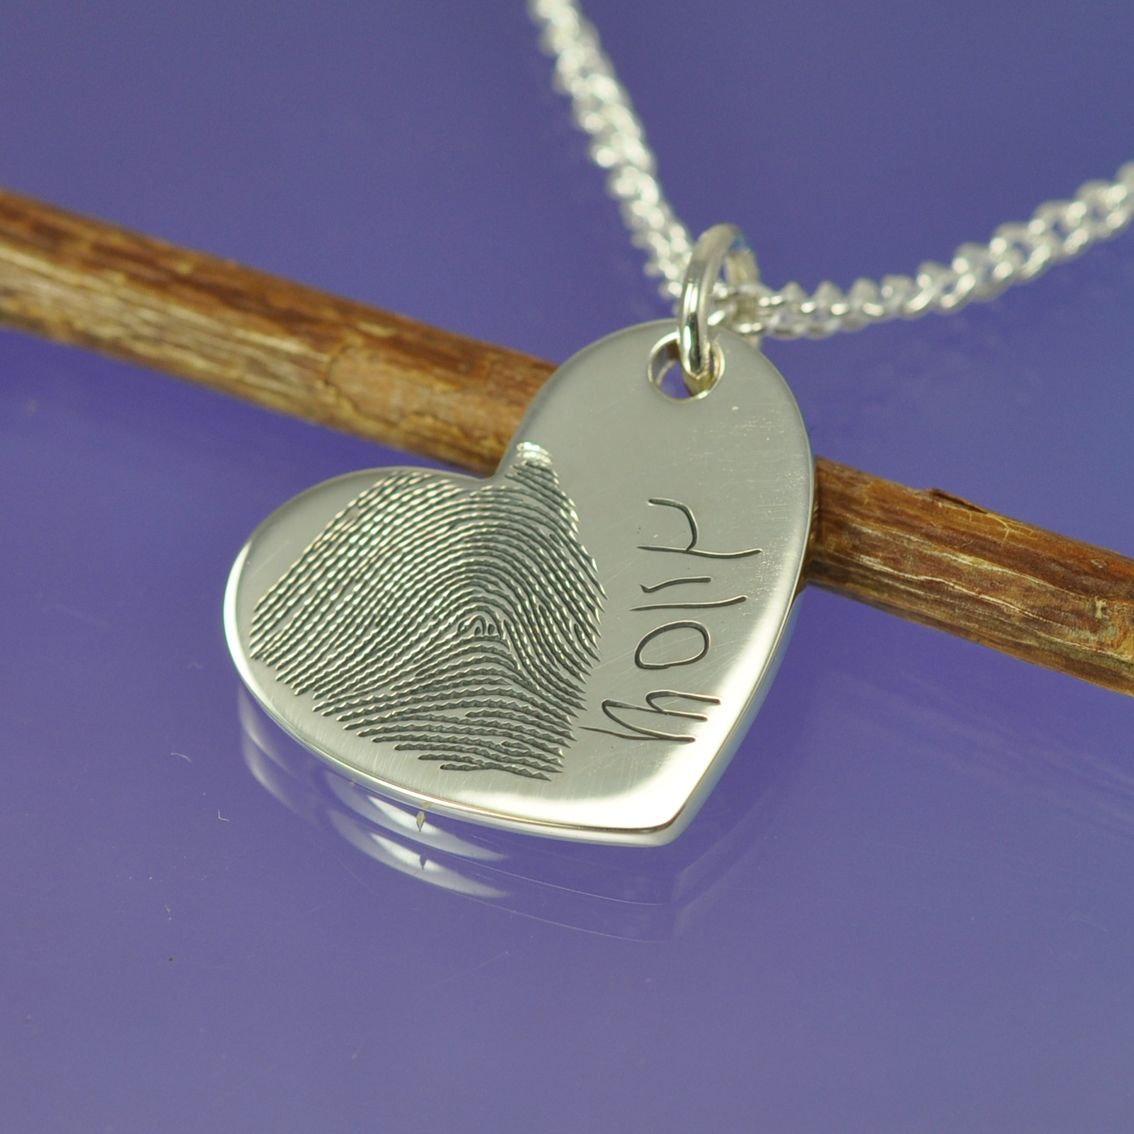 silver hold by personalised ink holduponheart necklace product fingerprint upon heart original